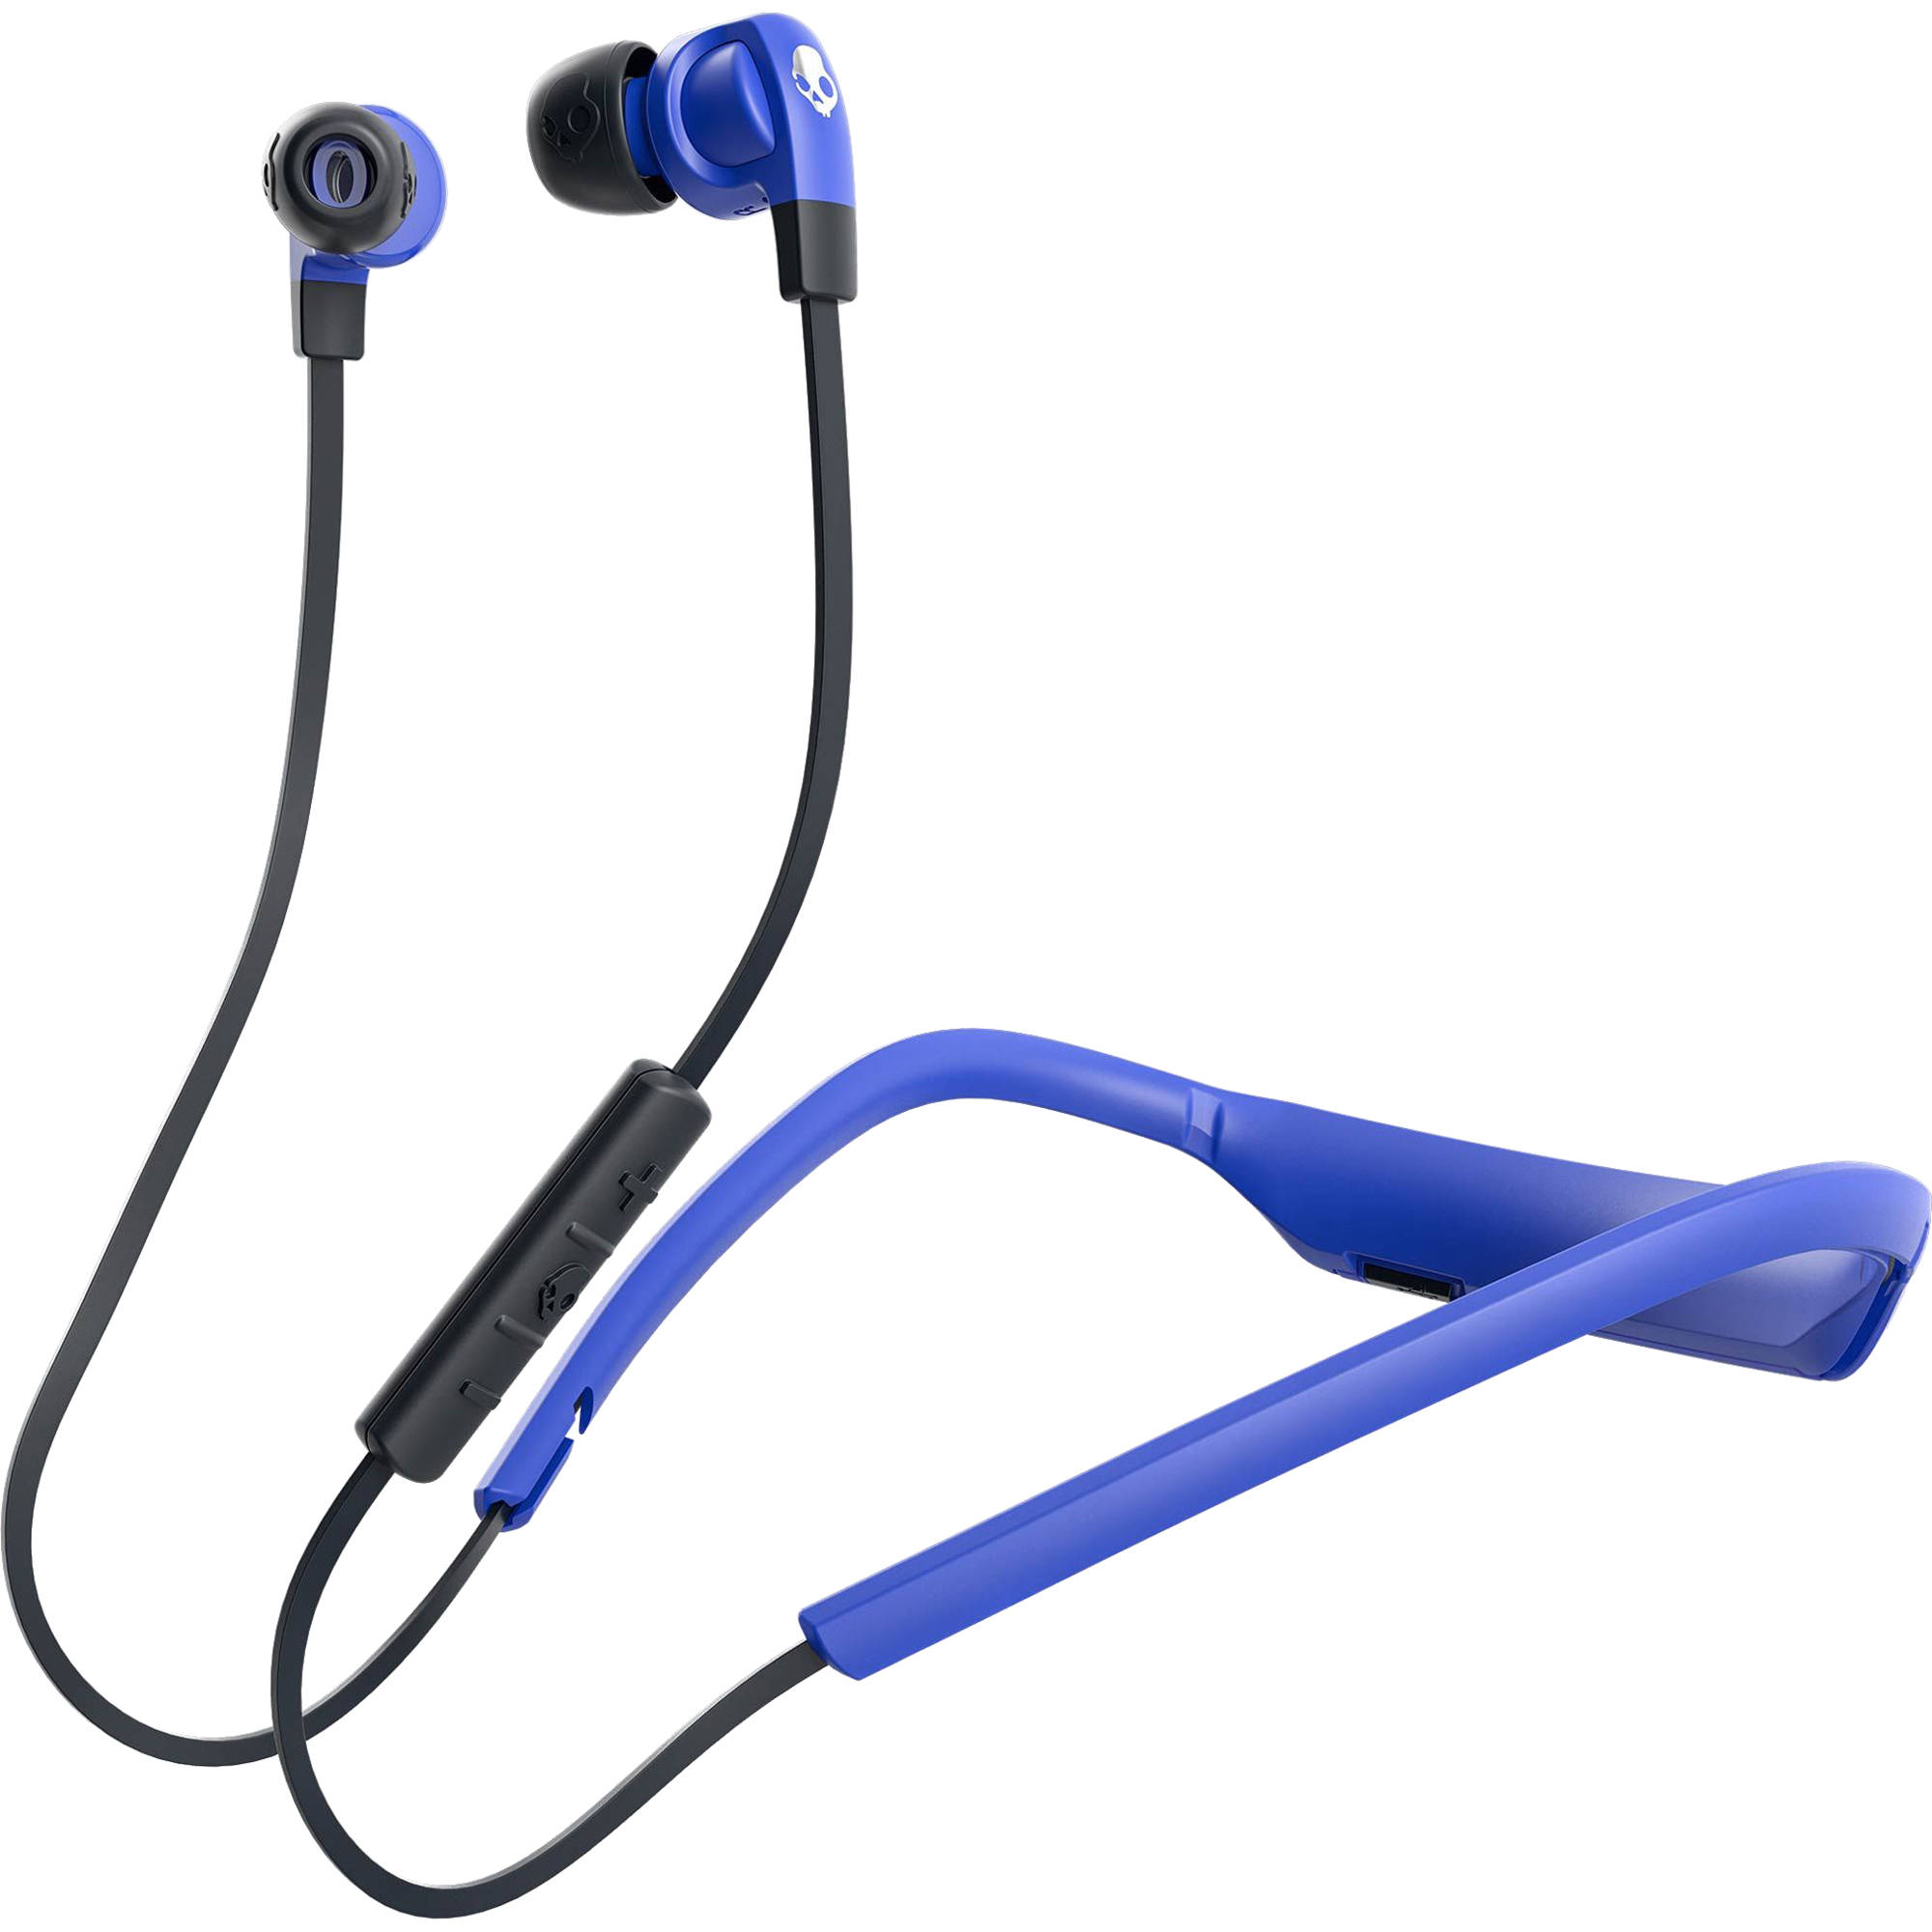 083cdf59c70 Skullcandy Smokin  Buds 2 Wireless Bluetooth In-Ear Headphones (Street Blue)